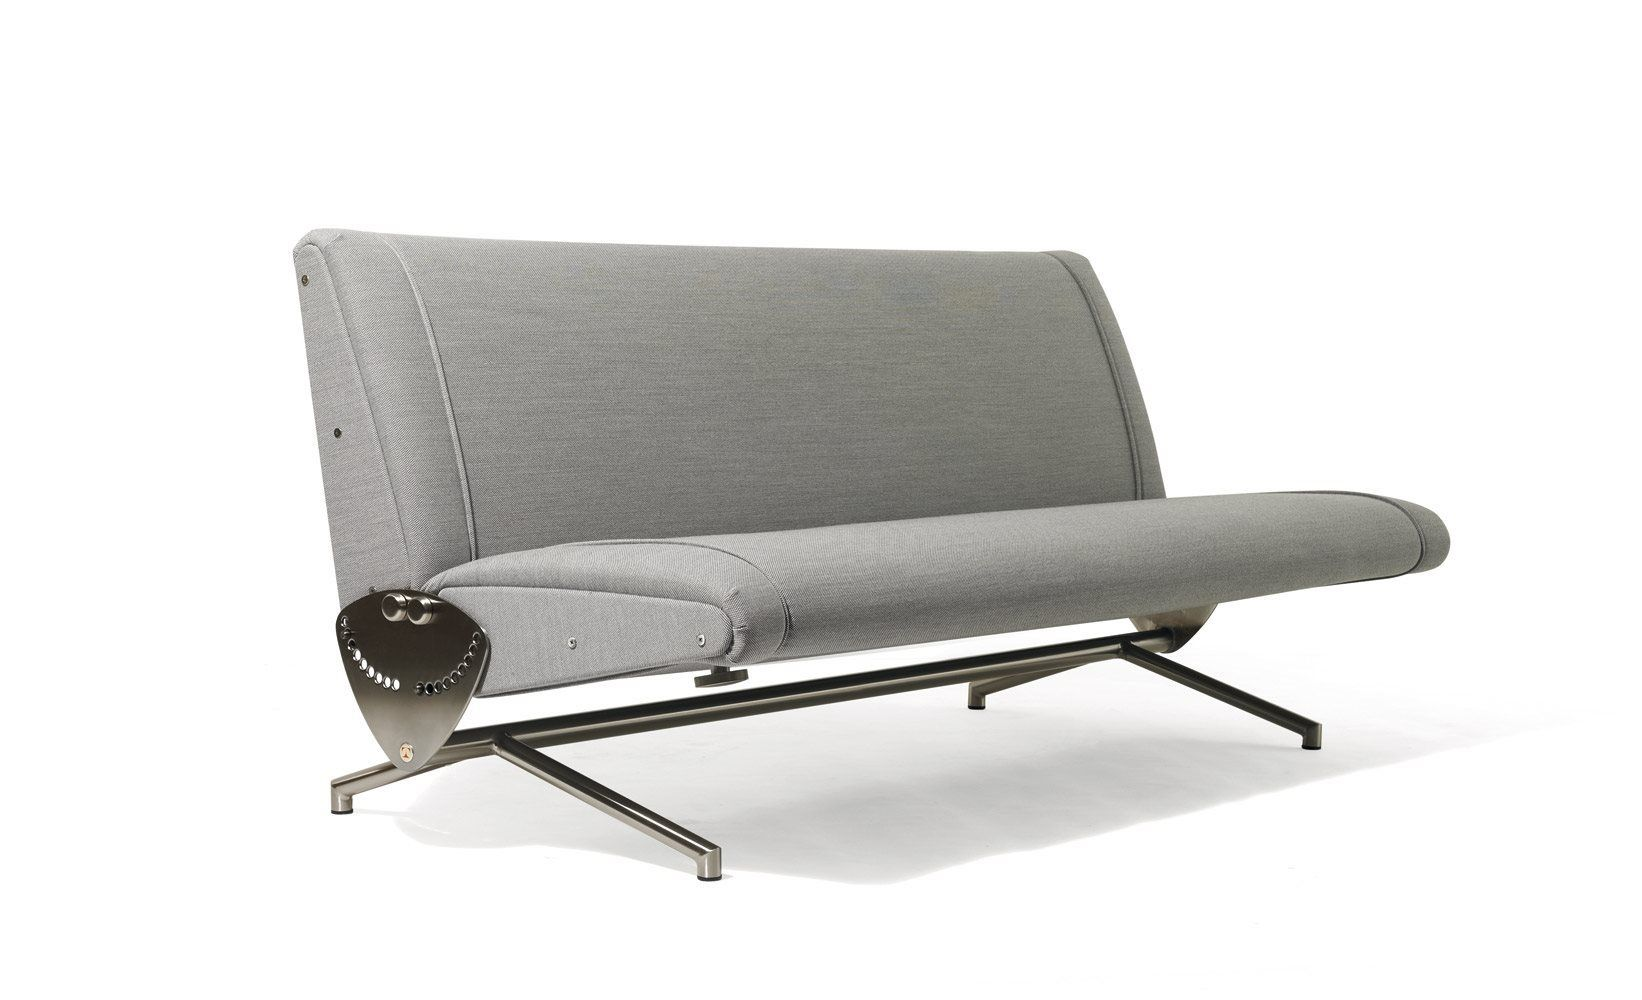 Osvaldo Borsani Sofa 1955 Sofa Furniture Daybed Bedding